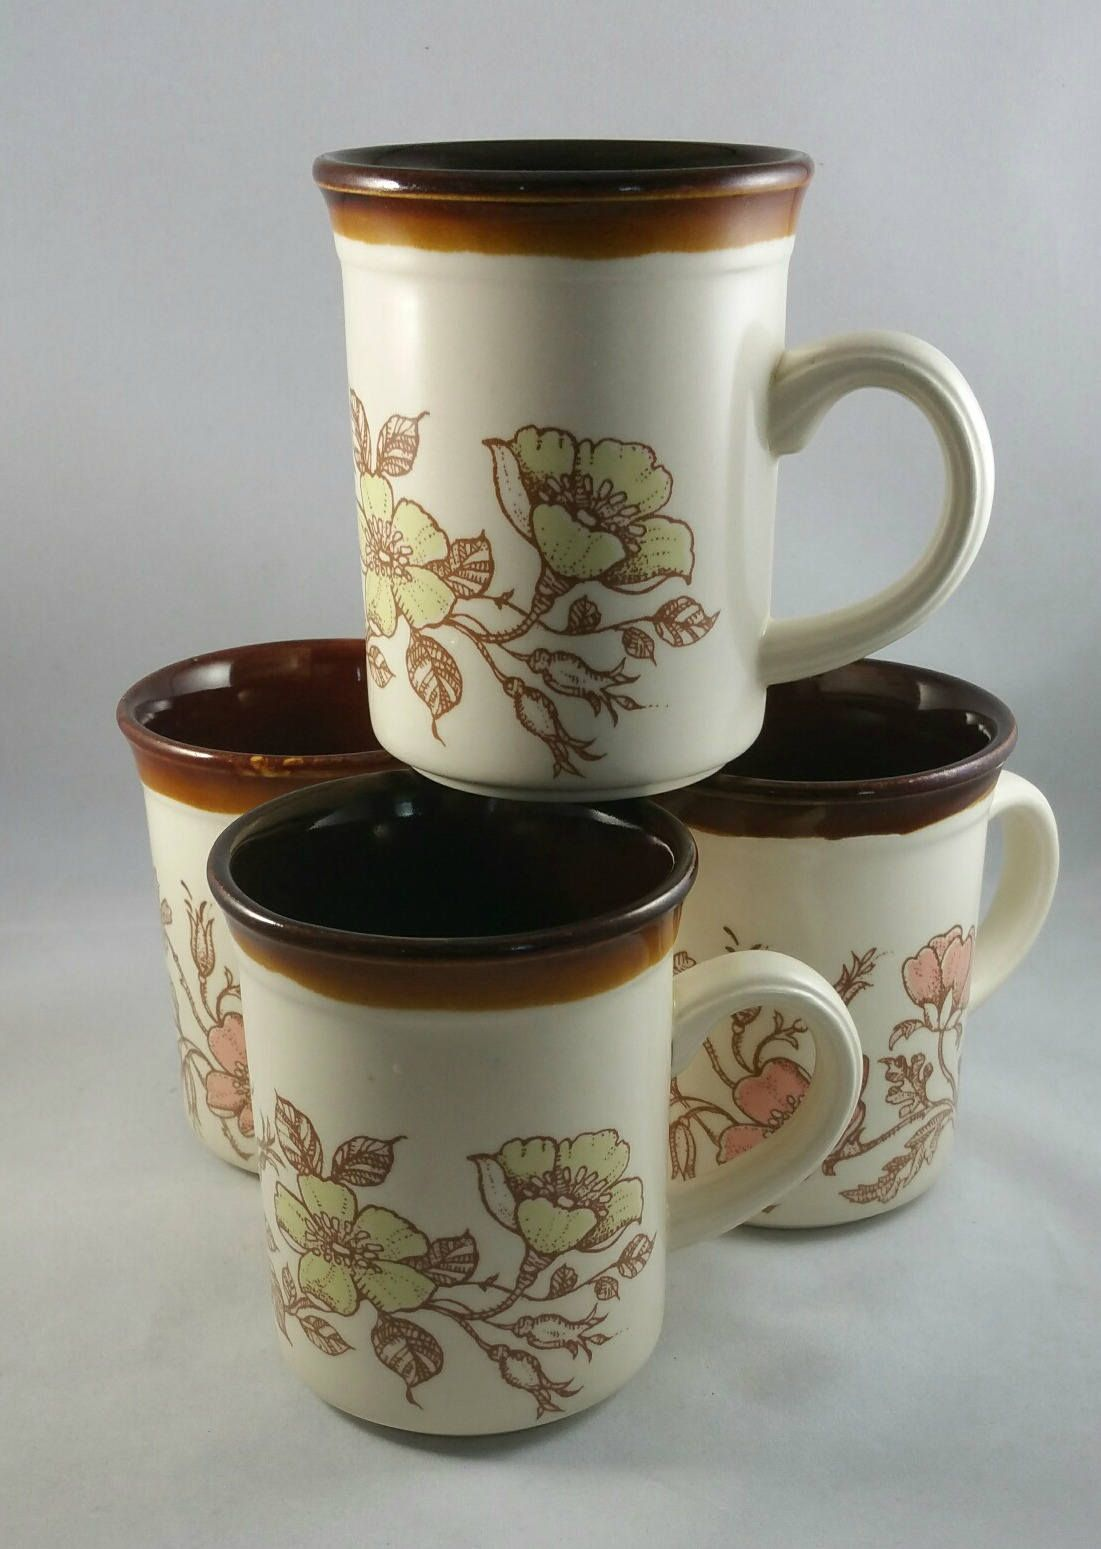 Vintage Bilton's Stoneware Coffee Mug Set, Set Of 4 Coffee